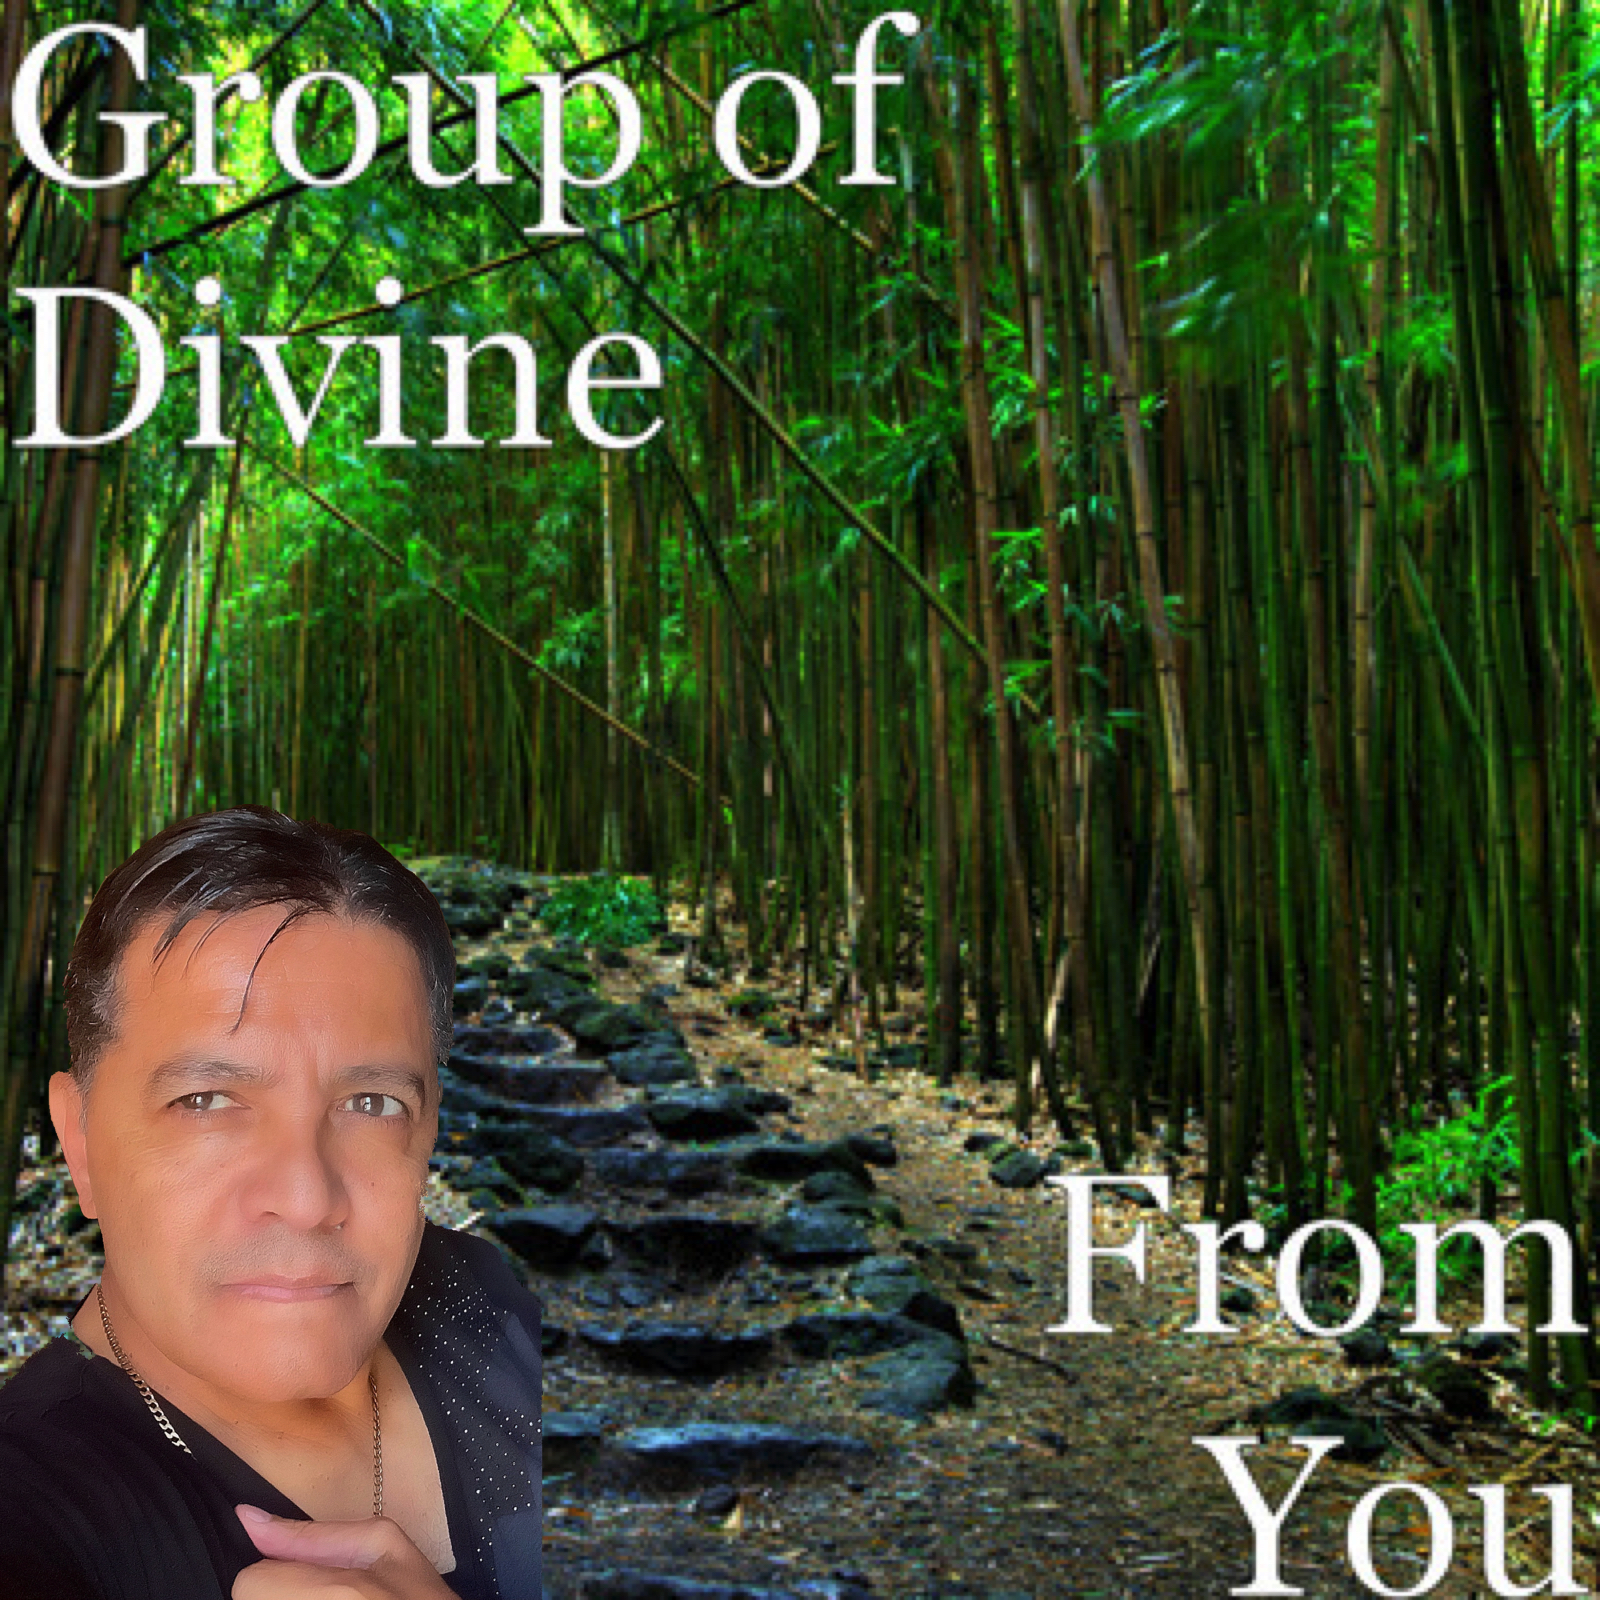 Cliff Weidman's gospel Group of Divine is making strides with 2019's I Found You EP.